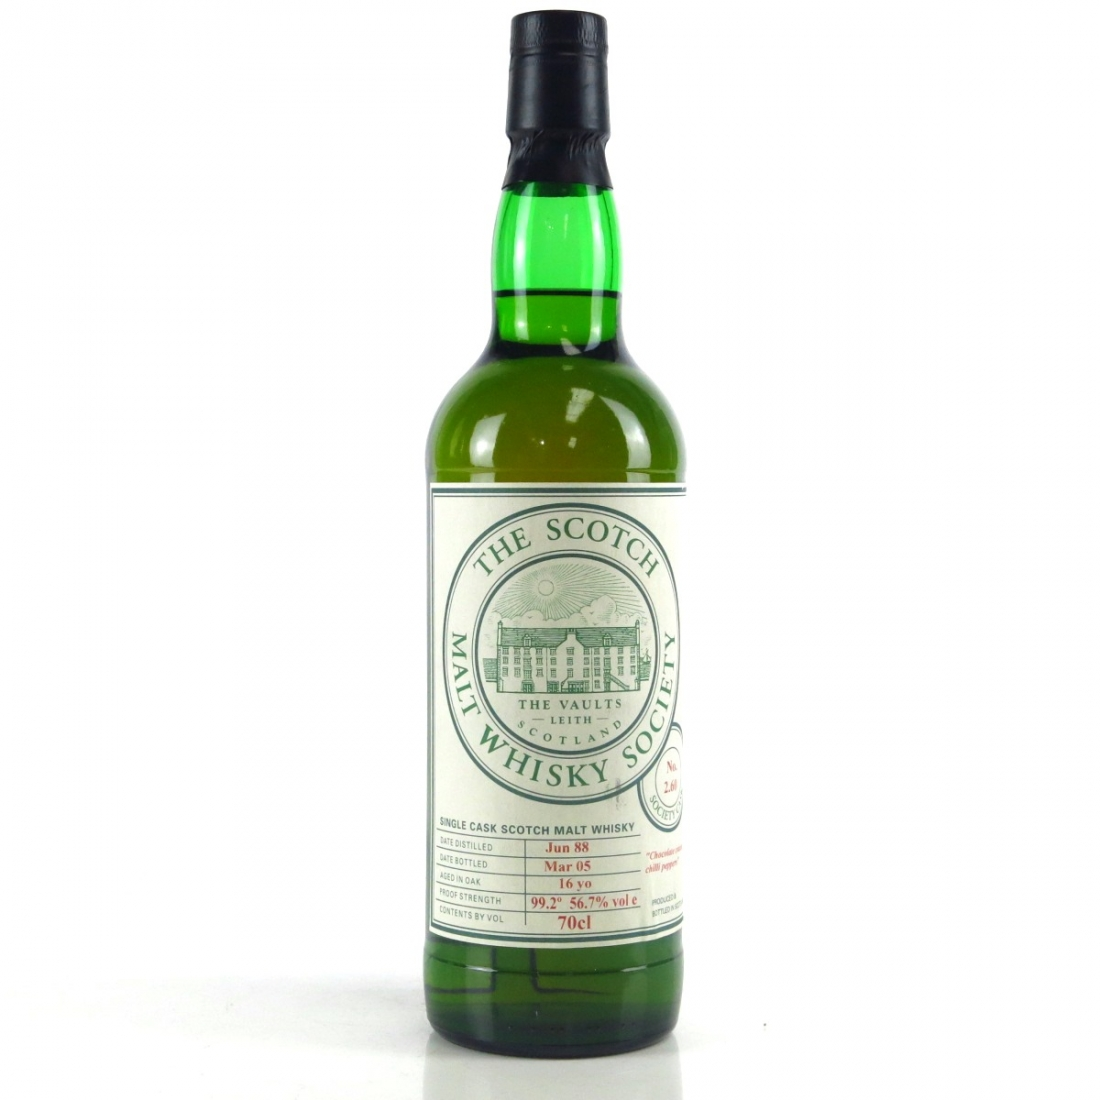 Glenlivet 1988 SMWS 16 Year Old 2.60